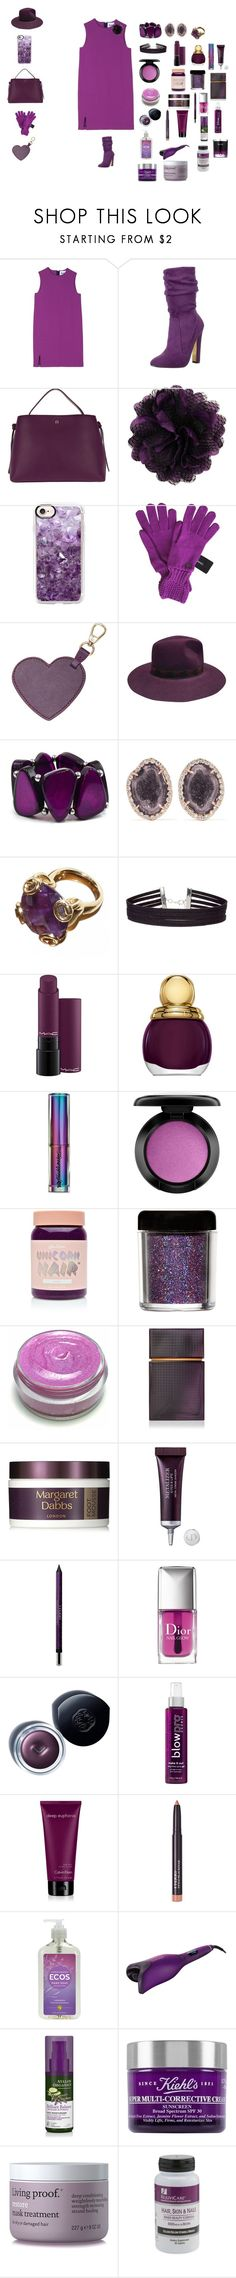 """""""Purple kisses on the phone"""" by sierracook14 ❤ liked on Polyvore featuring Acne Studios, Luichiny, Etienne Aigner, Casetify, Sonia Rykiel, Etro, Kim Rogers, Kimberly McDonald, Miss Selfridge and MAC Cosmetics"""